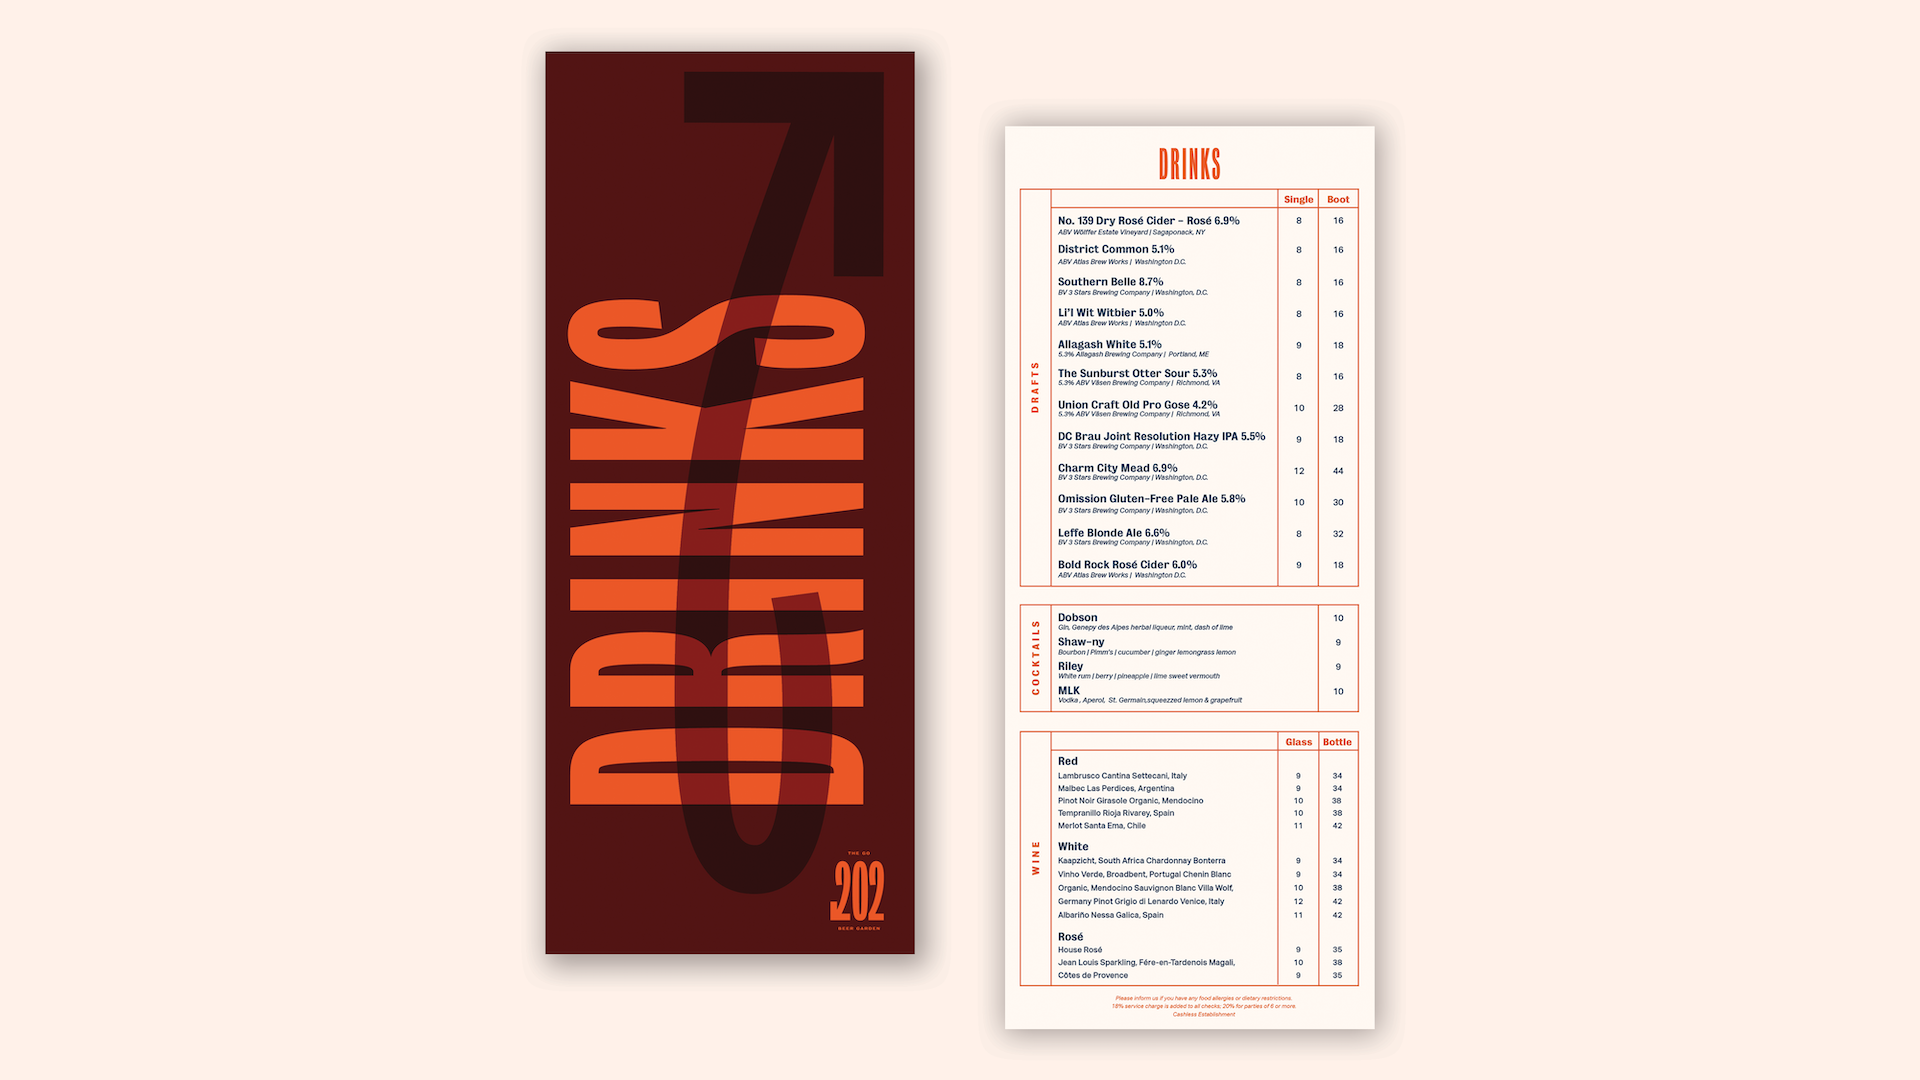 The front and back of The Go 202 drink menu